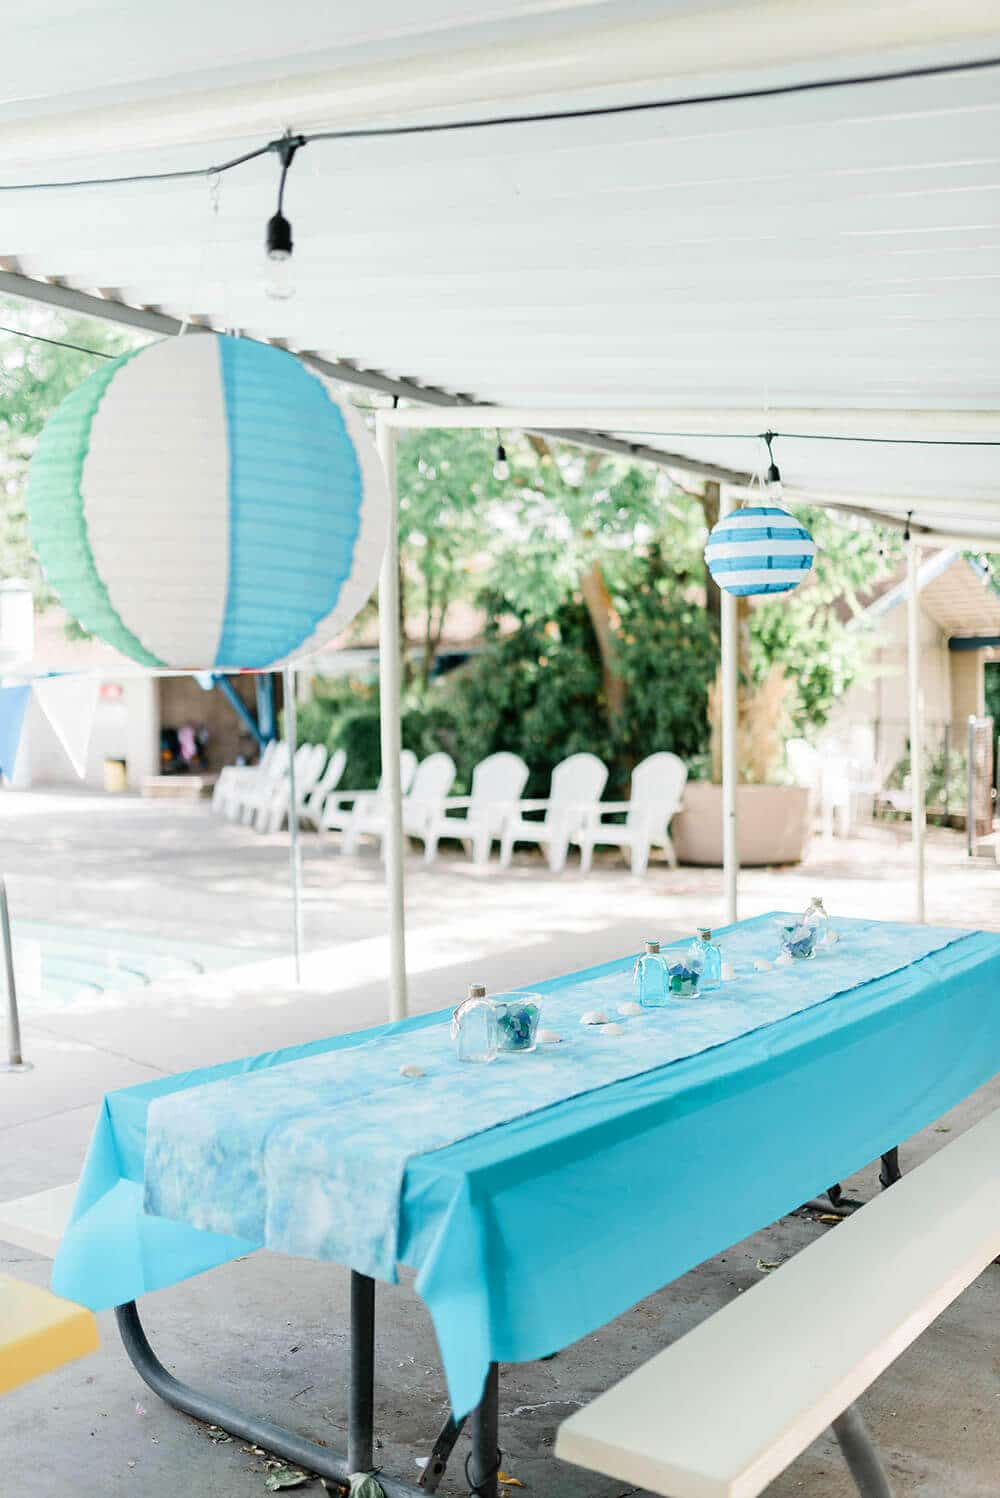 Pool party table decor with hanging lanterns